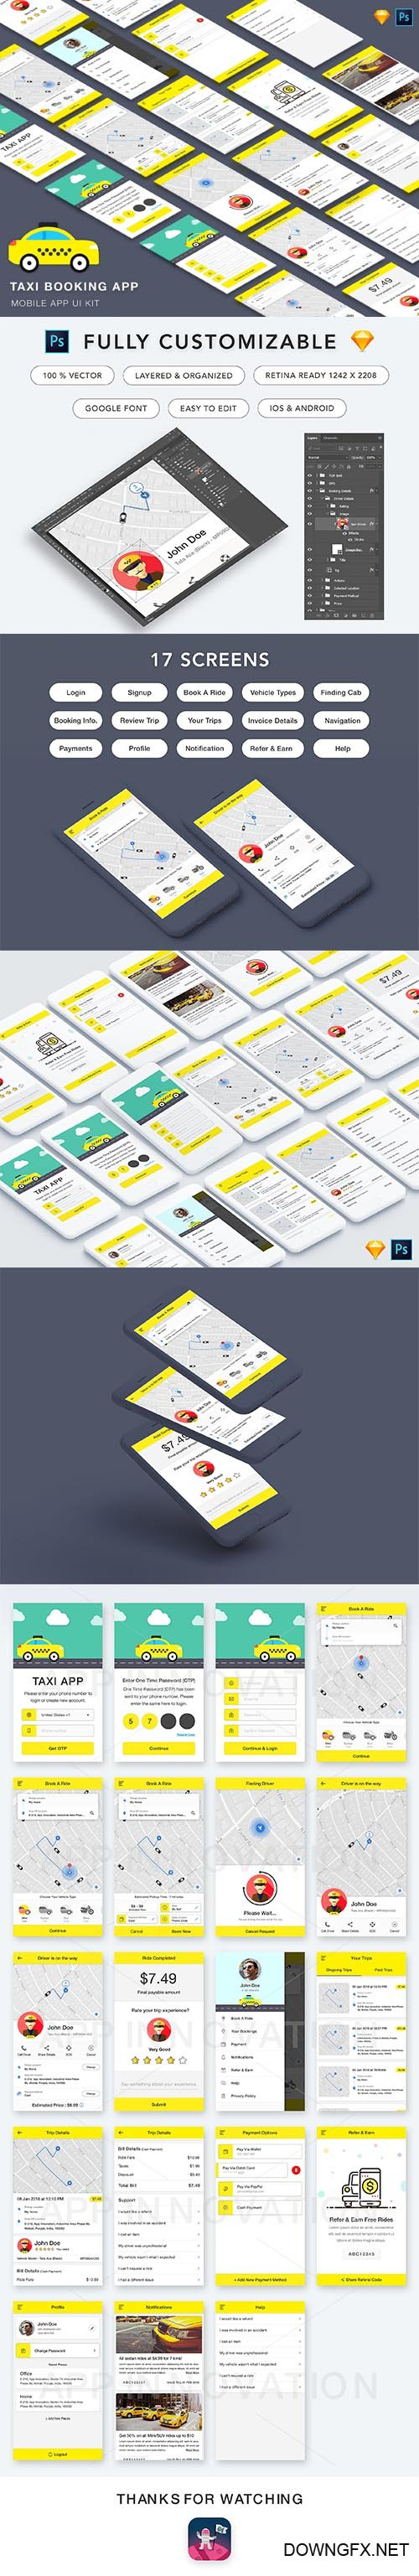 Taxi Booking App UI Kit - CM 2195772